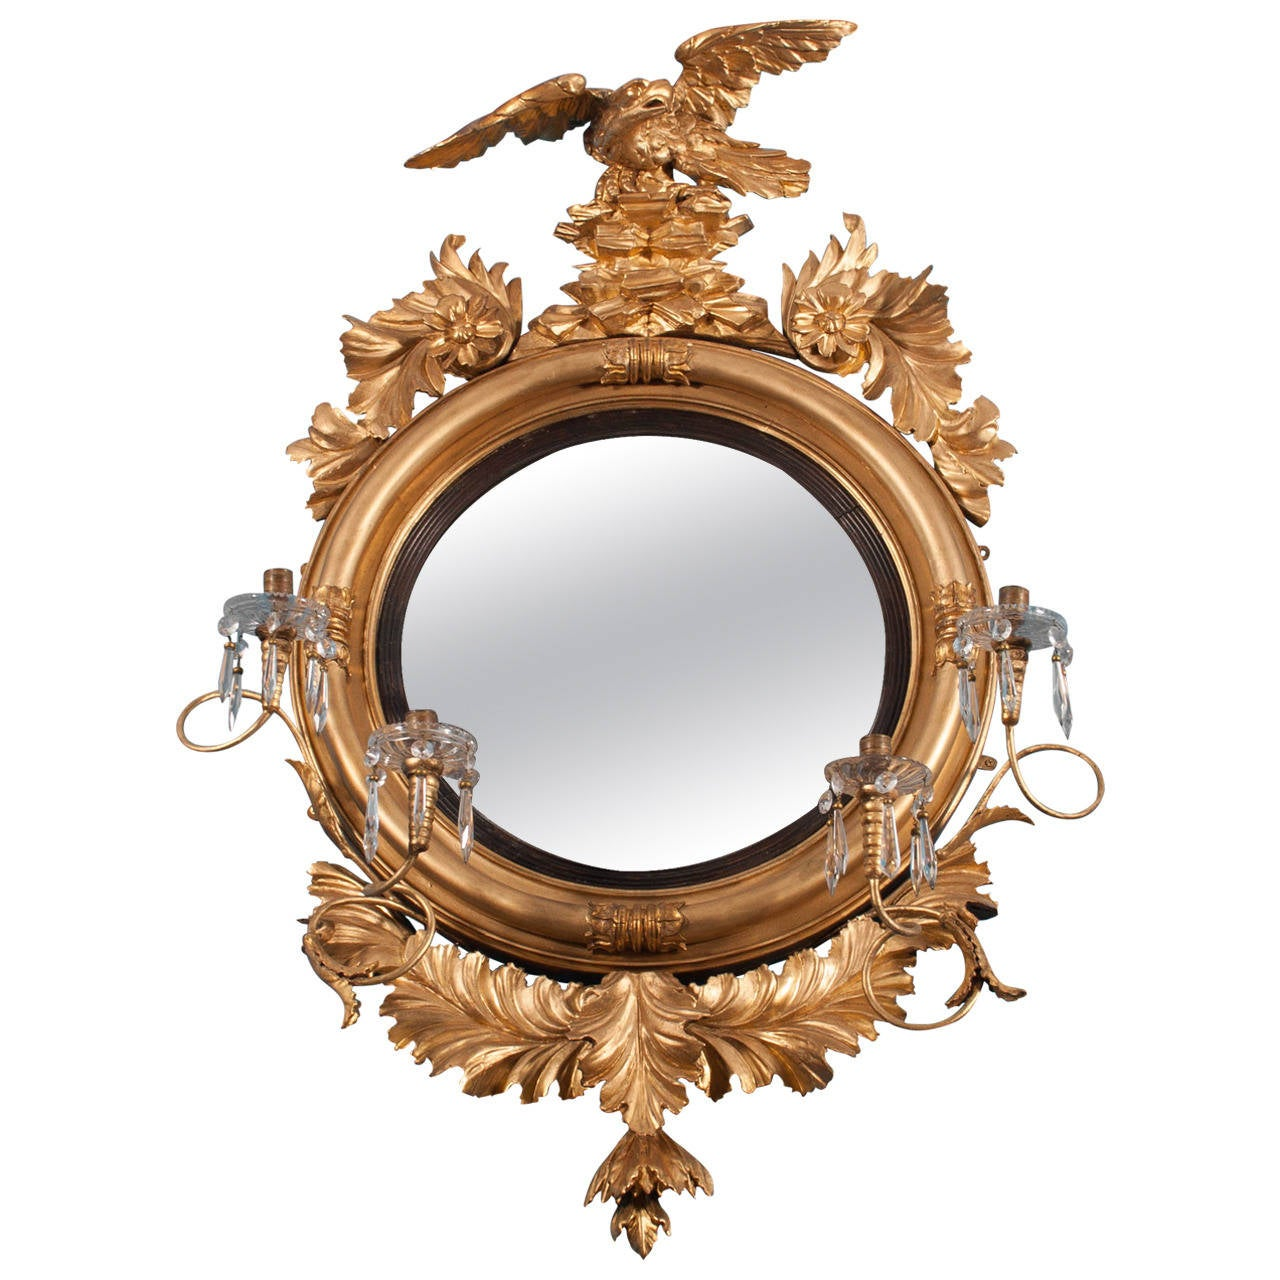 Carved giltwood convex girandole mirror for sale at 1stdibs for Mirrors for sale